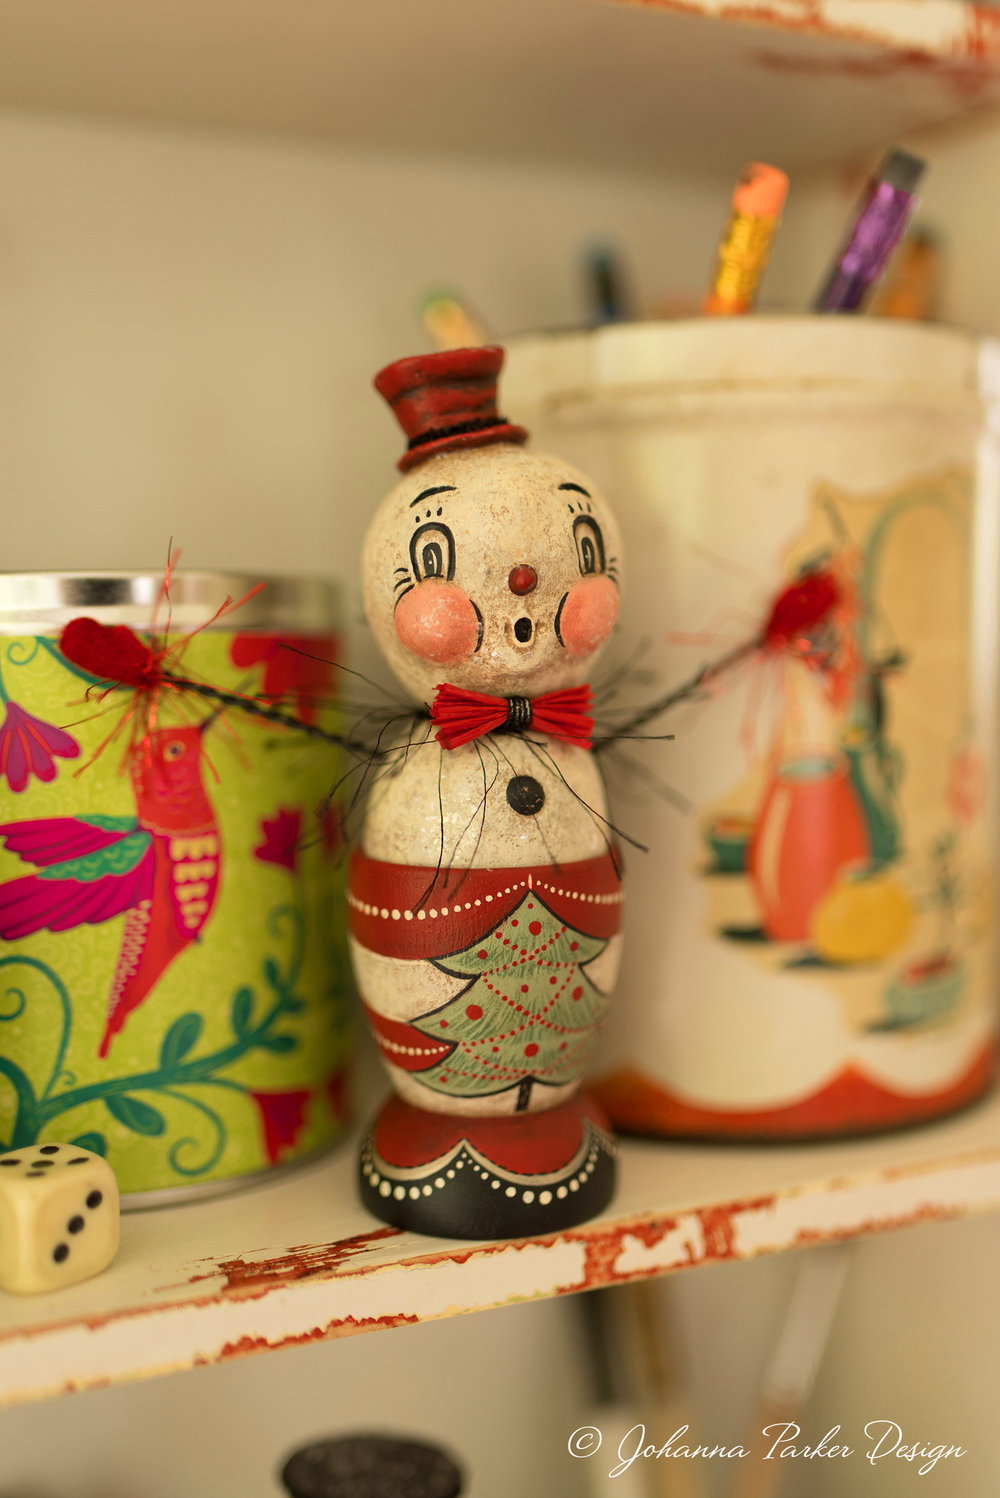 A festive snowman egg cup whistles a merry tune!